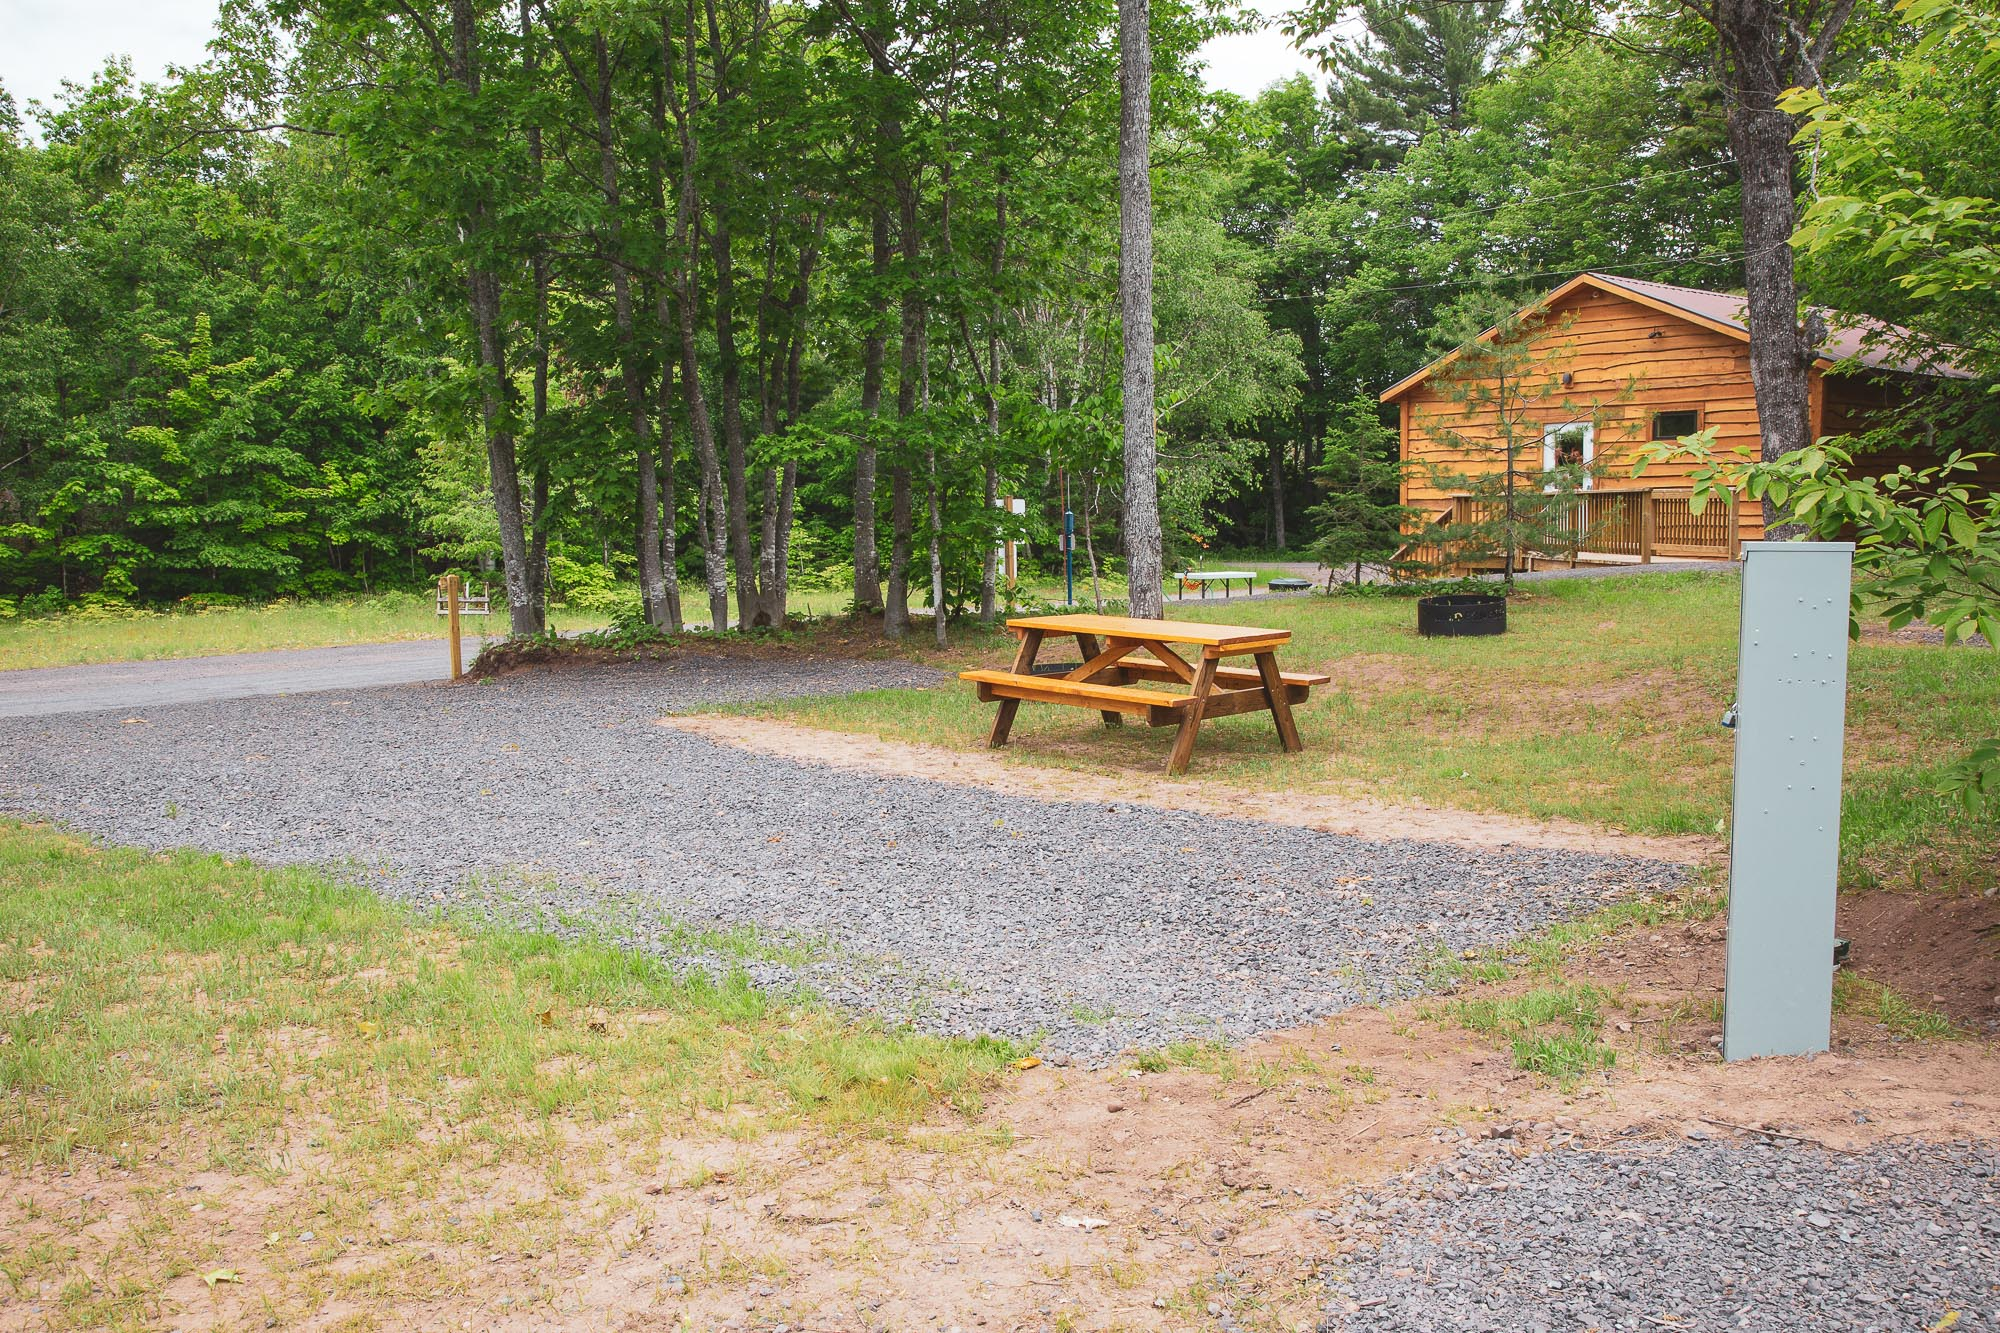 Photo of Campground Site 15  at the Wilderness Resort in Lac La Belle Michigan